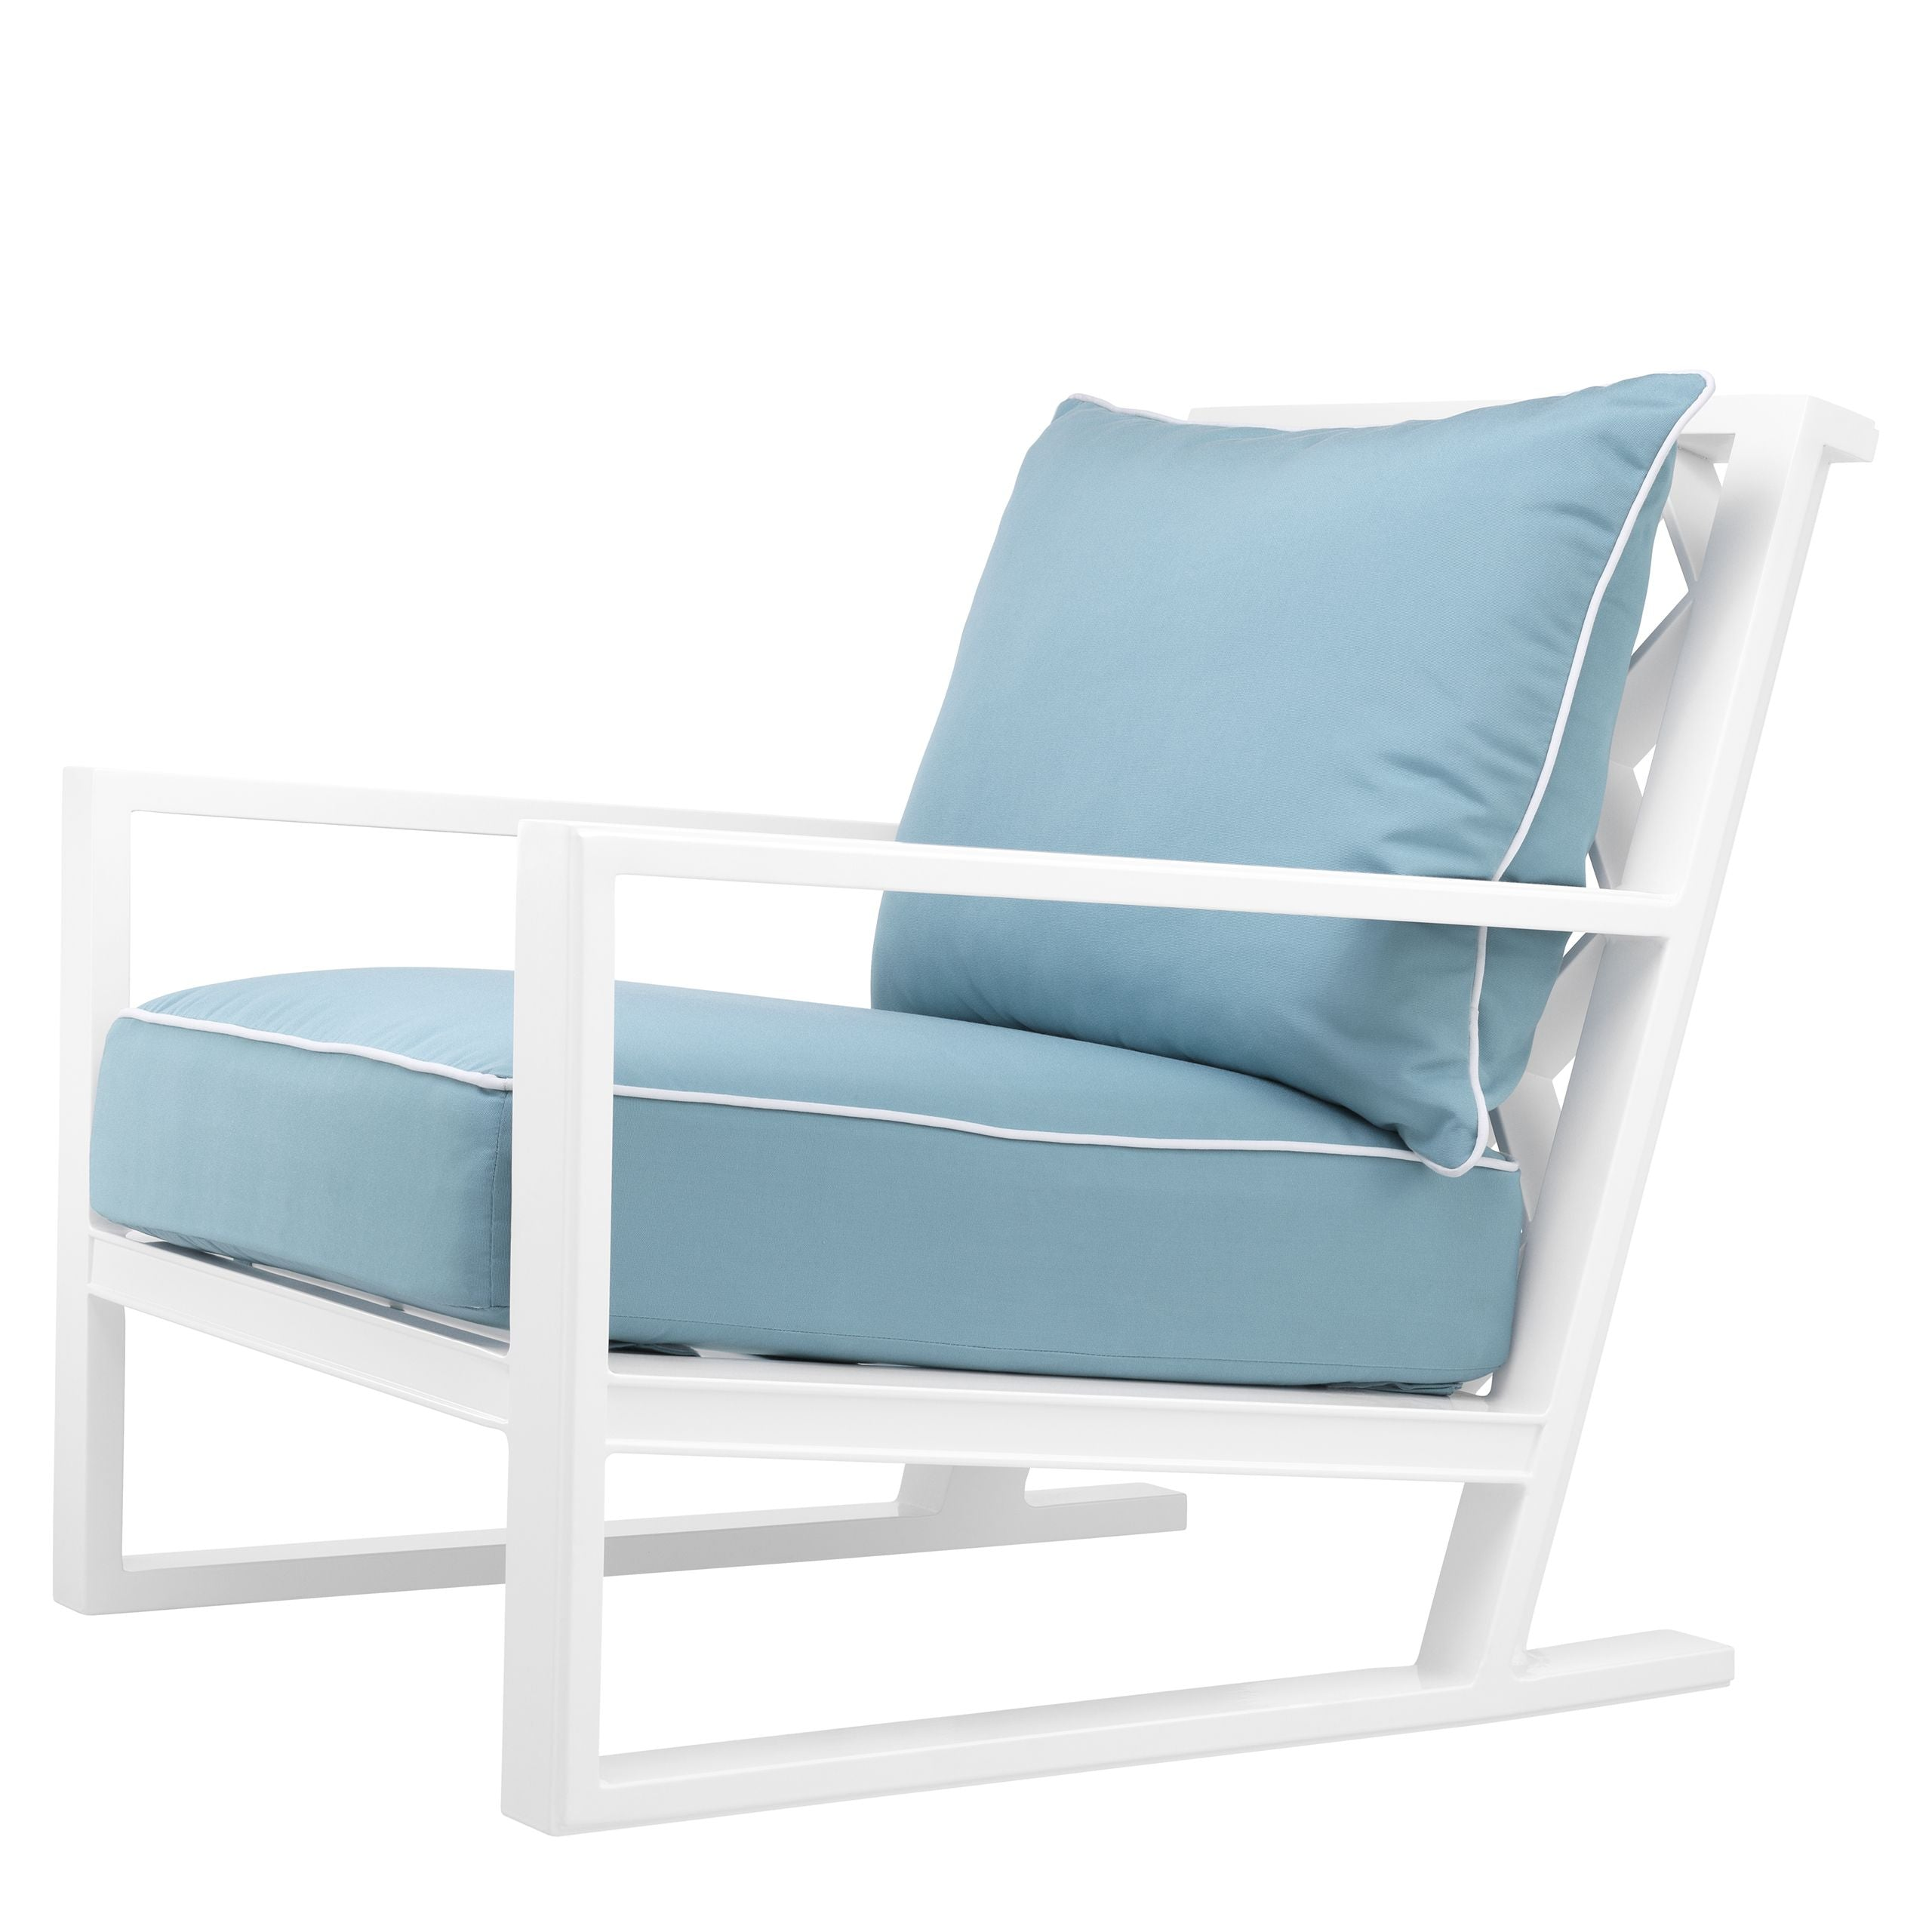 Outdoor Lounge Chair Como +